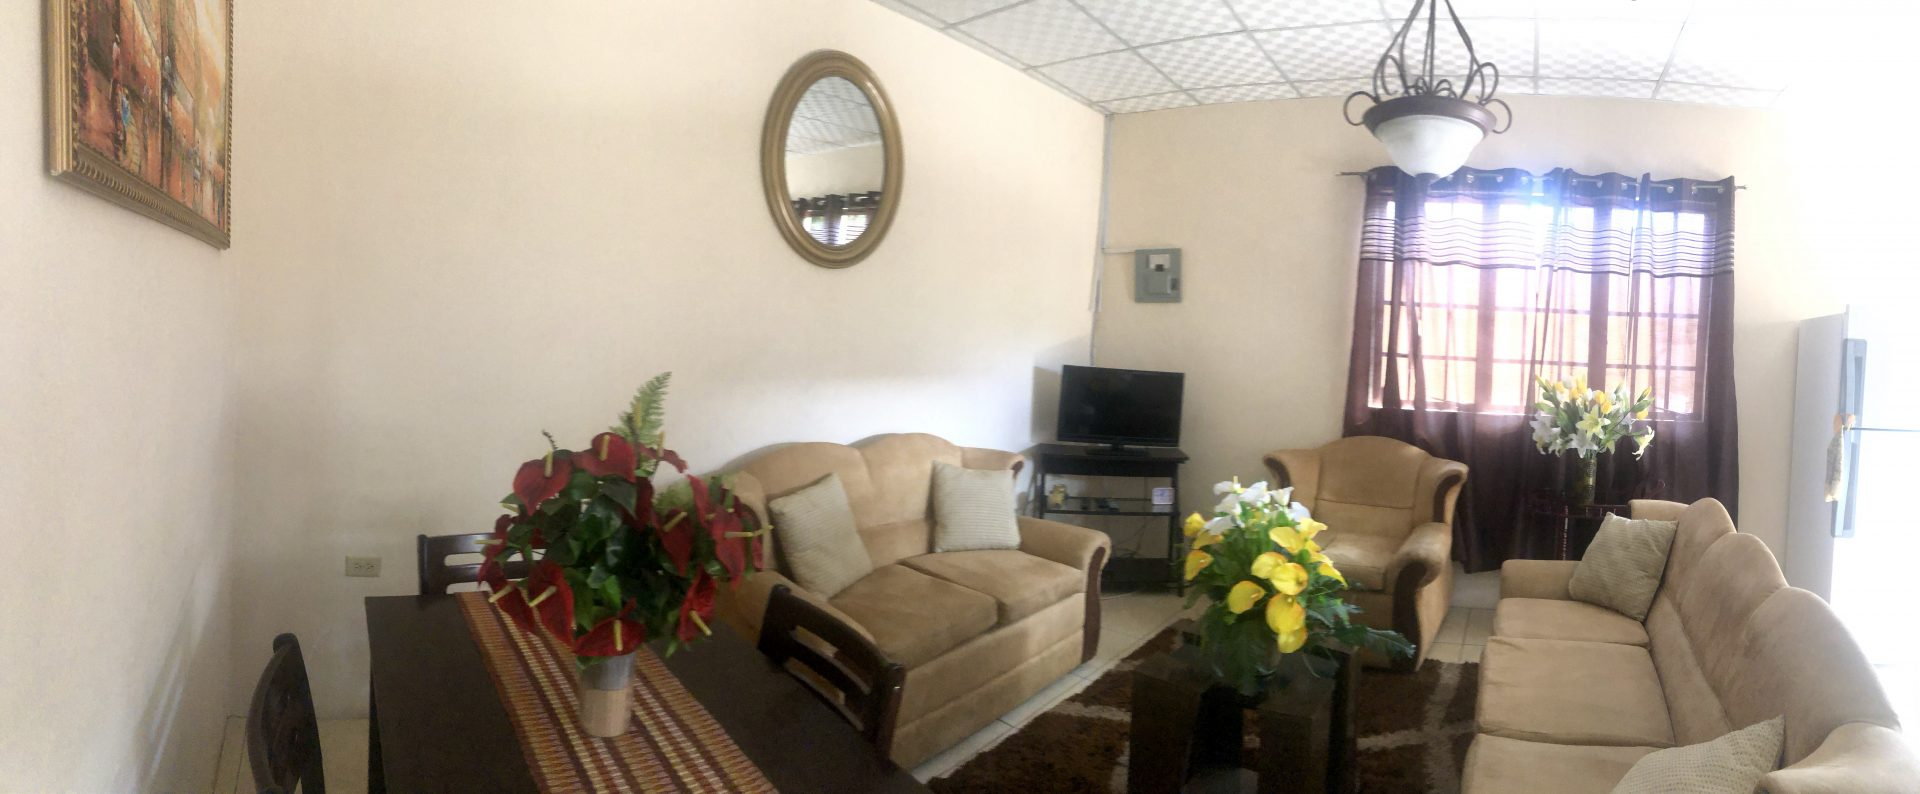 ST. JAMES 2 BEDROOM FURNISHED APT.